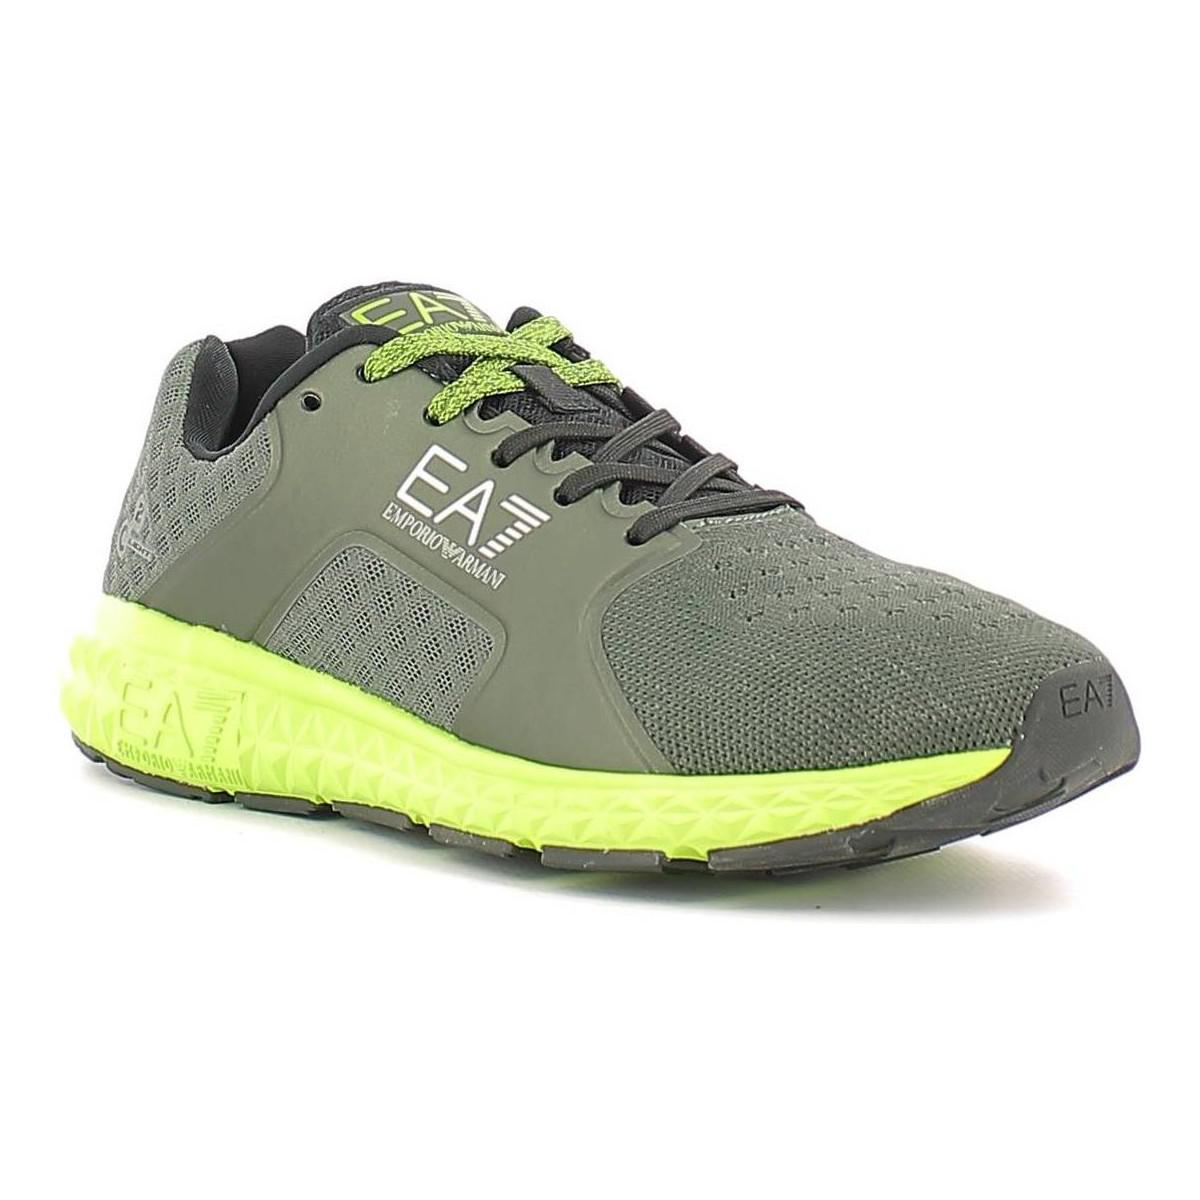 Ea7 278069 6a258 Sport Shoes Man Verde Men s Trainers In Green in ... 675c219c17b